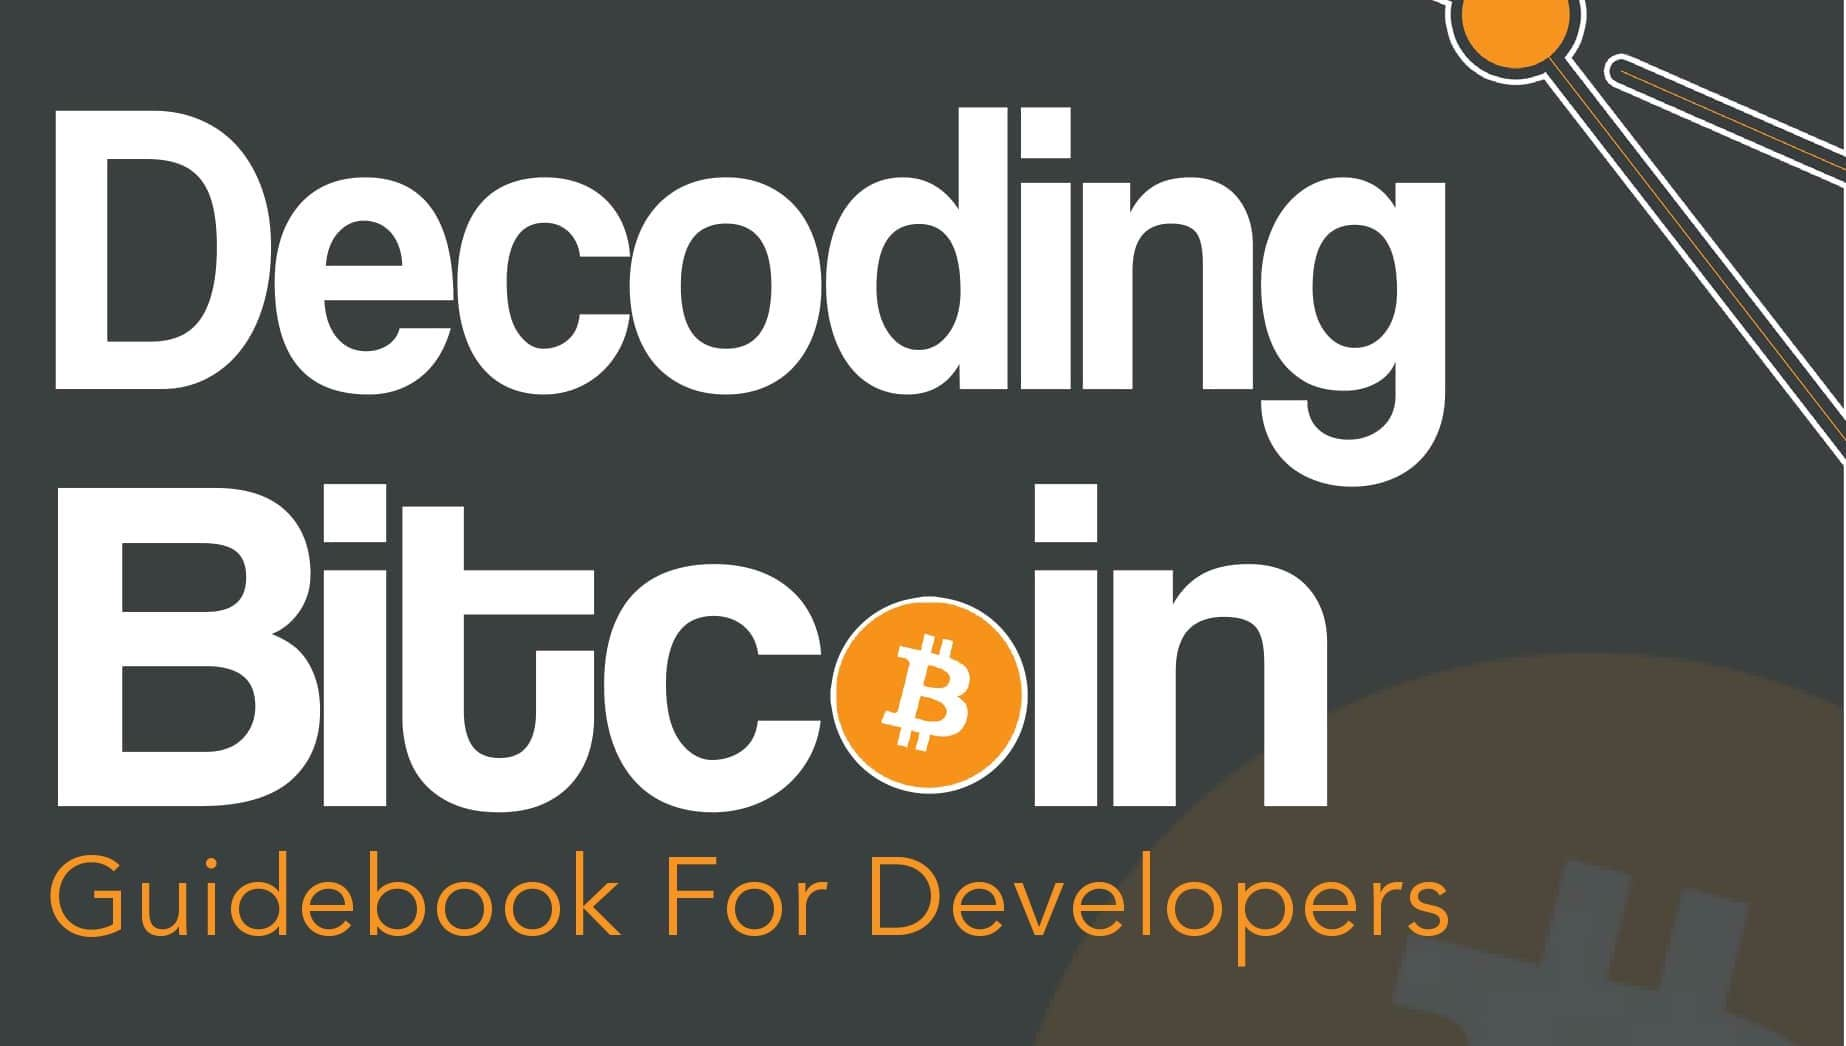 Image of Baby Bitcoin Guidebook for Developers Pre-Launch